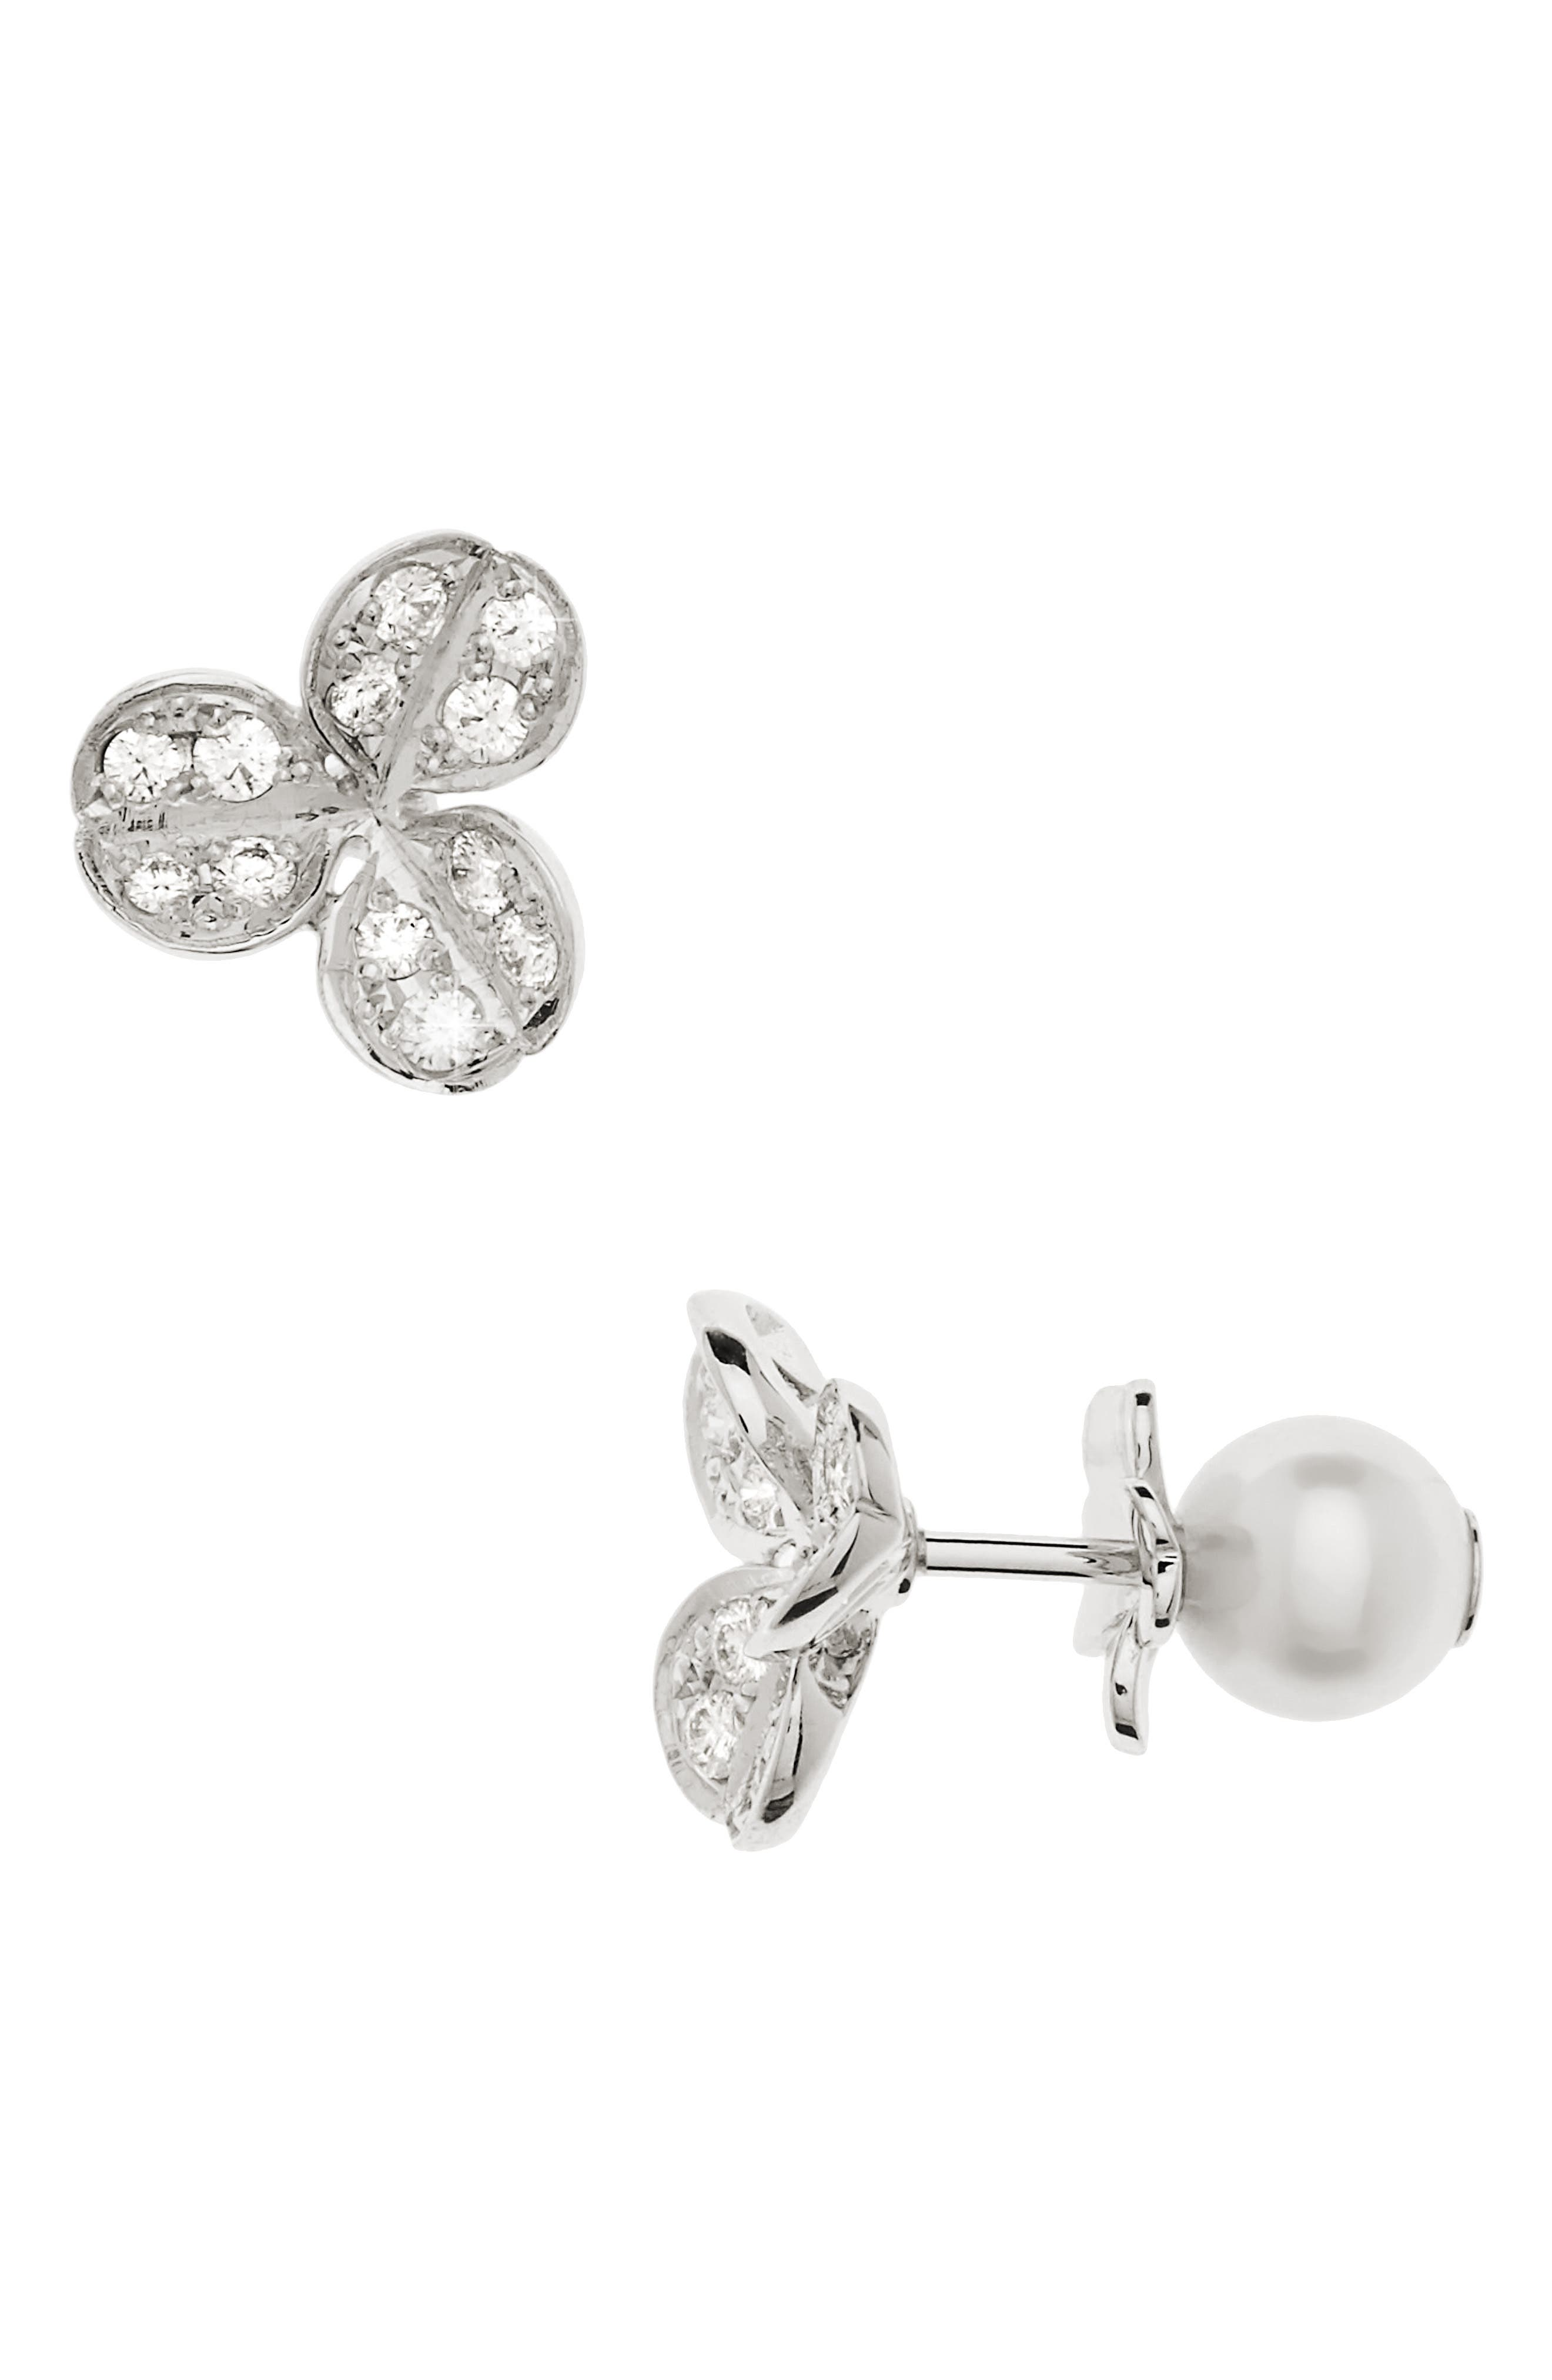 Pearl & Diamond Front/Back Earrings,                             Main thumbnail 1, color,                             WHITE GOLD